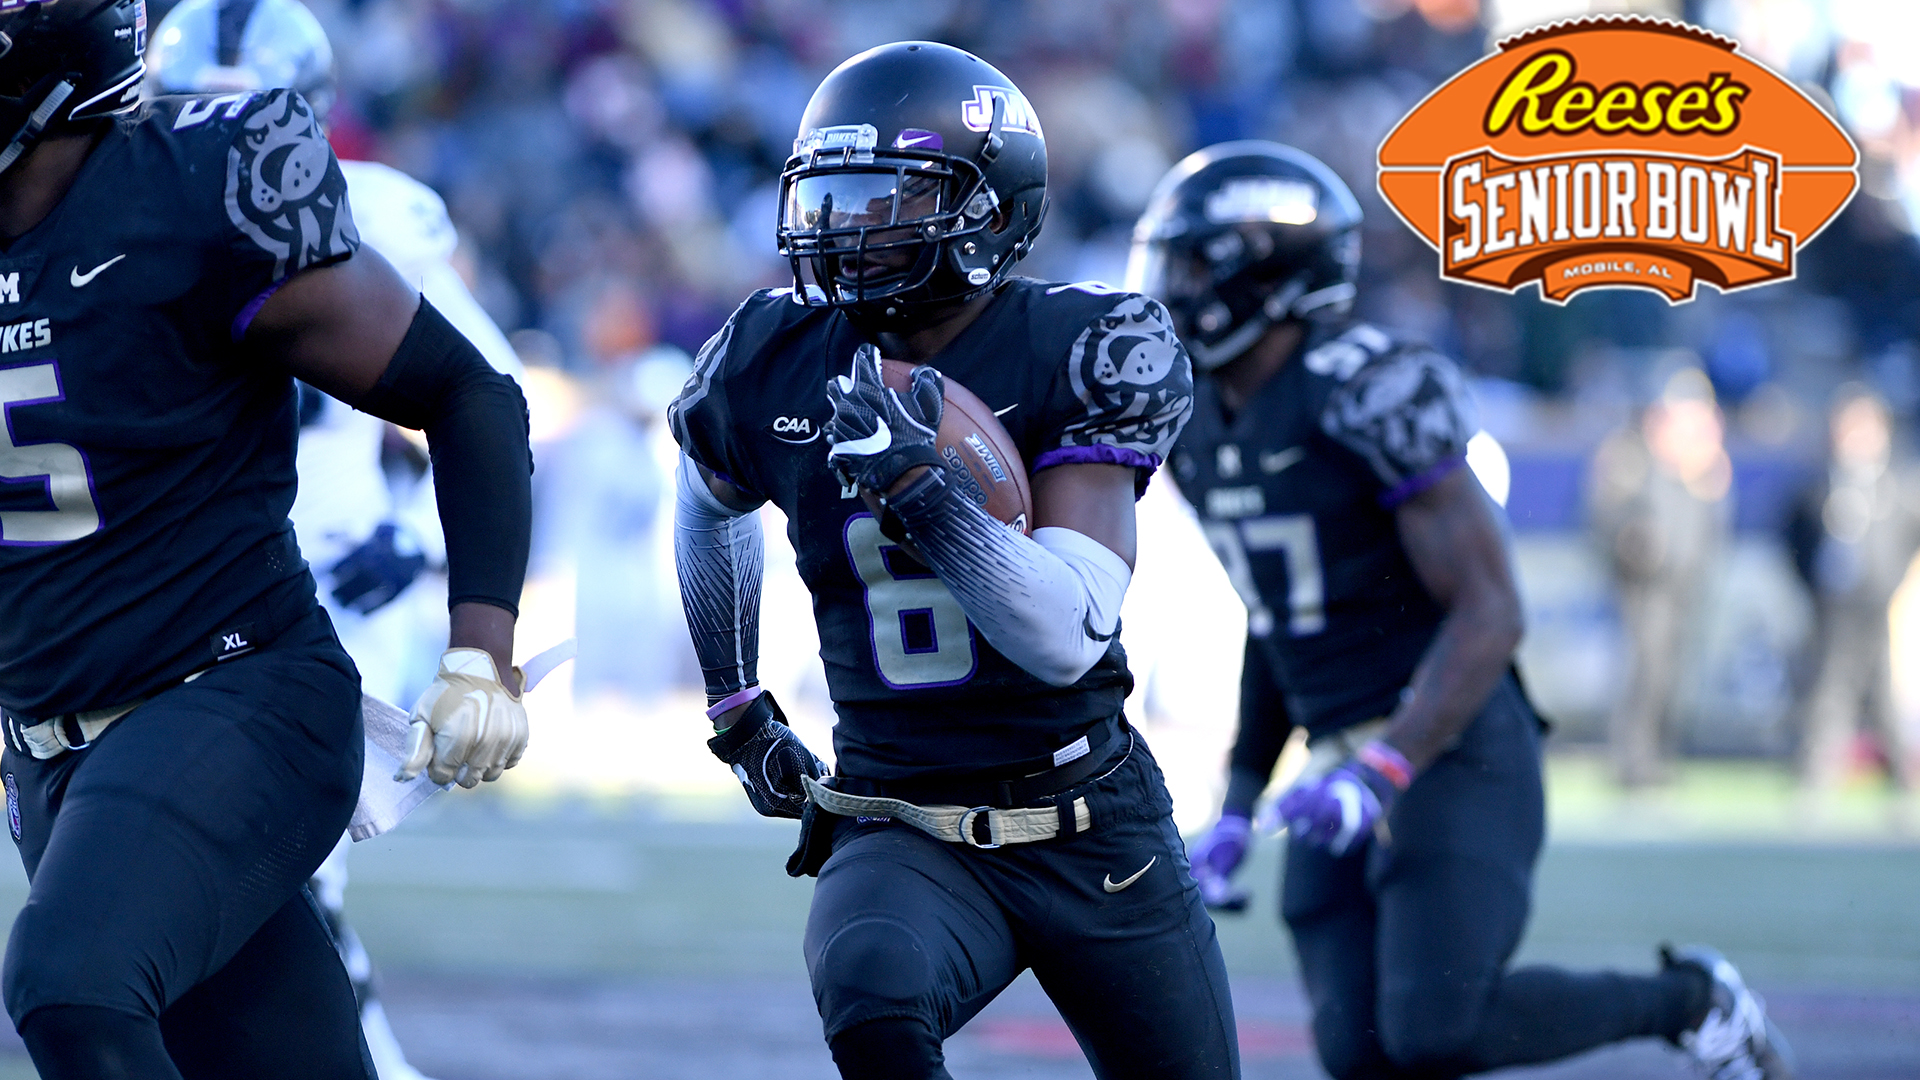 Football: Jimmy Moreland Becomes First JMU Player Selected to Reese's Senior Bowl